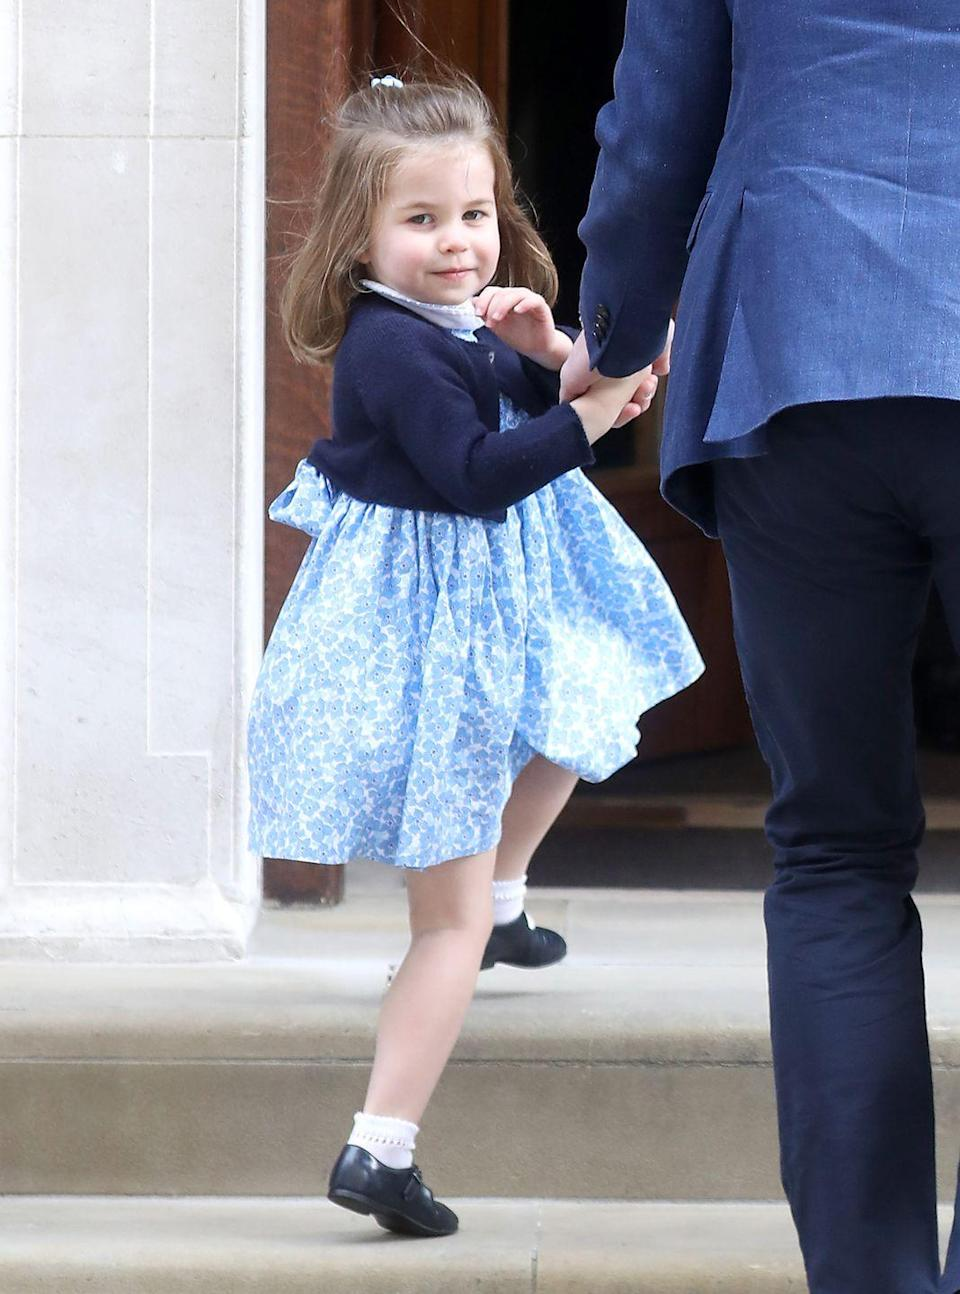 """<p>Even at four years old, Princess Charlotte exhibits the refined tastebuds of a royal. <a href=""""https://twitter.com/RE_DailyMail/status/1092778181185208320?ref_src=twsrc%5Etfw%7Ctwcamp%5Etweetembed%7Ctwterm%5E1092778181185208320&ref_url=https%3A%2F%2Fwww.townandcountrymag.com%2Fsociety%2Ftradition%2Fa26143246%2Fprincess-charlotte-kate-middleton-likes-olives-cooking%2F"""" rel=""""nofollow noopener"""" target=""""_blank"""" data-ylk=""""slk:Kate Middleton shared"""" class=""""link rapid-noclick-resp"""">Kate Middleton shared</a> that the Princess loves olives and is a big fan of <a href=""""https://www.delish.com/food-news/a30431088/royal-chef-darren-mcgrady-kate-middleton-video/"""" rel=""""nofollow noopener"""" target=""""_blank"""" data-ylk=""""slk:cooking with her mom"""" class=""""link rapid-noclick-resp"""">cooking with her mom</a>. </p>"""